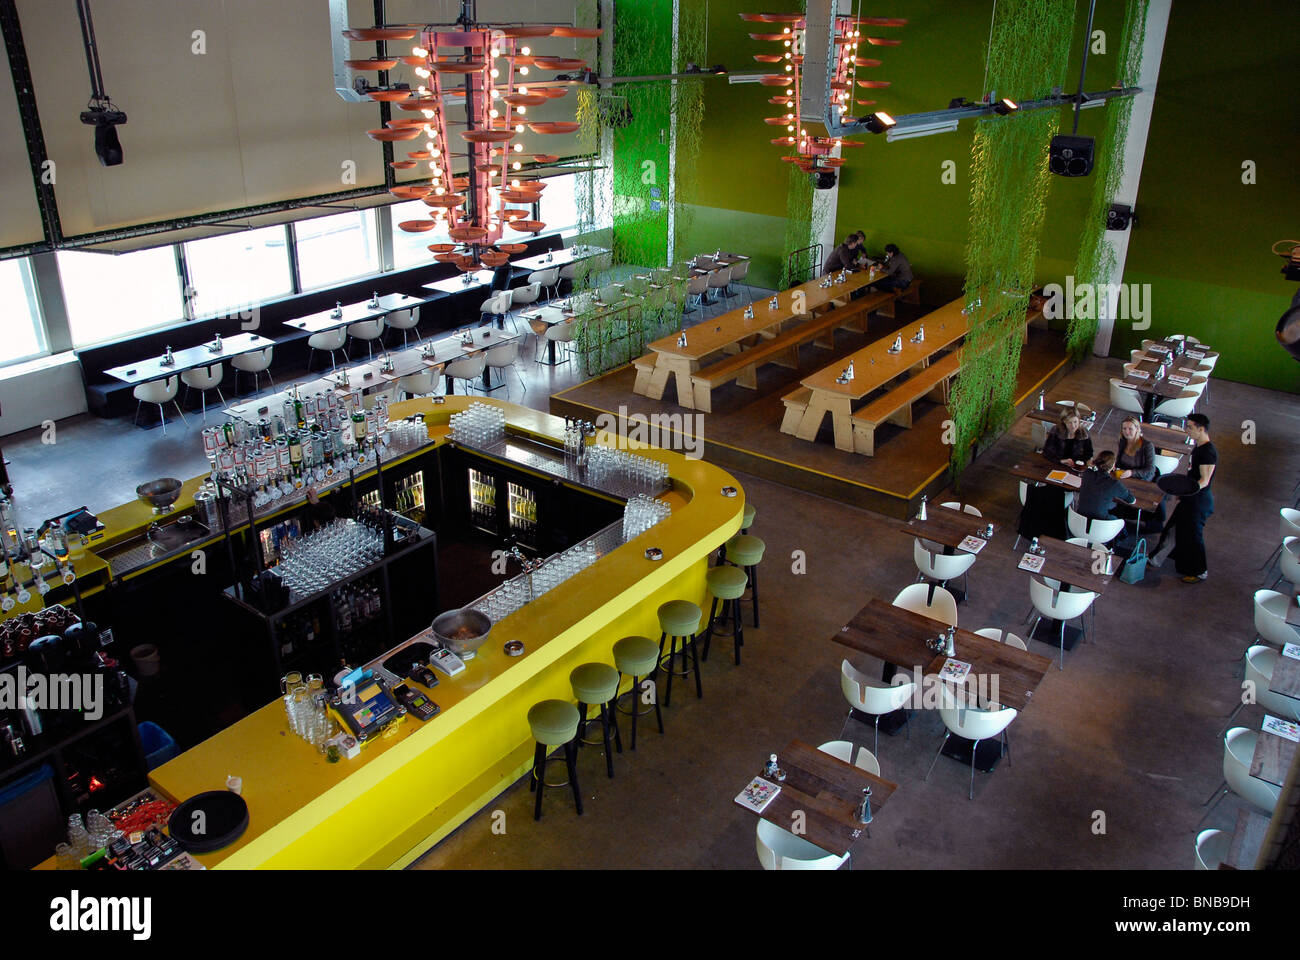 amsterdam netherlands restaurant modern architecture interior bar